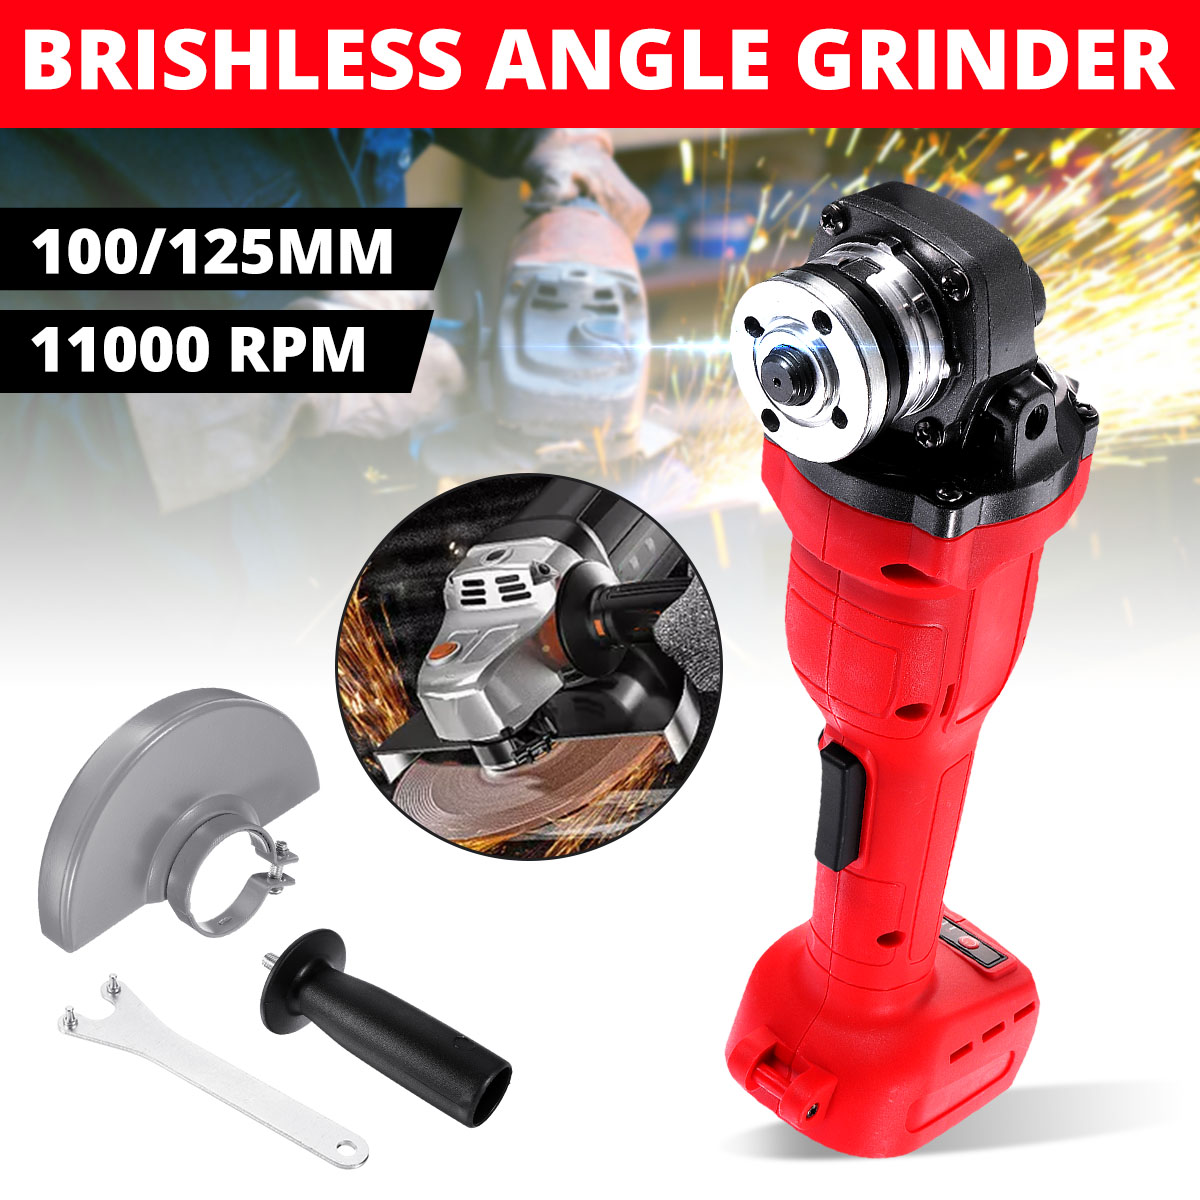 For Makita Battery 125mm Brushless Cordless Impact Angle Grinder Without Battery 18V 800W Power Tool Cutting Machine Polisher